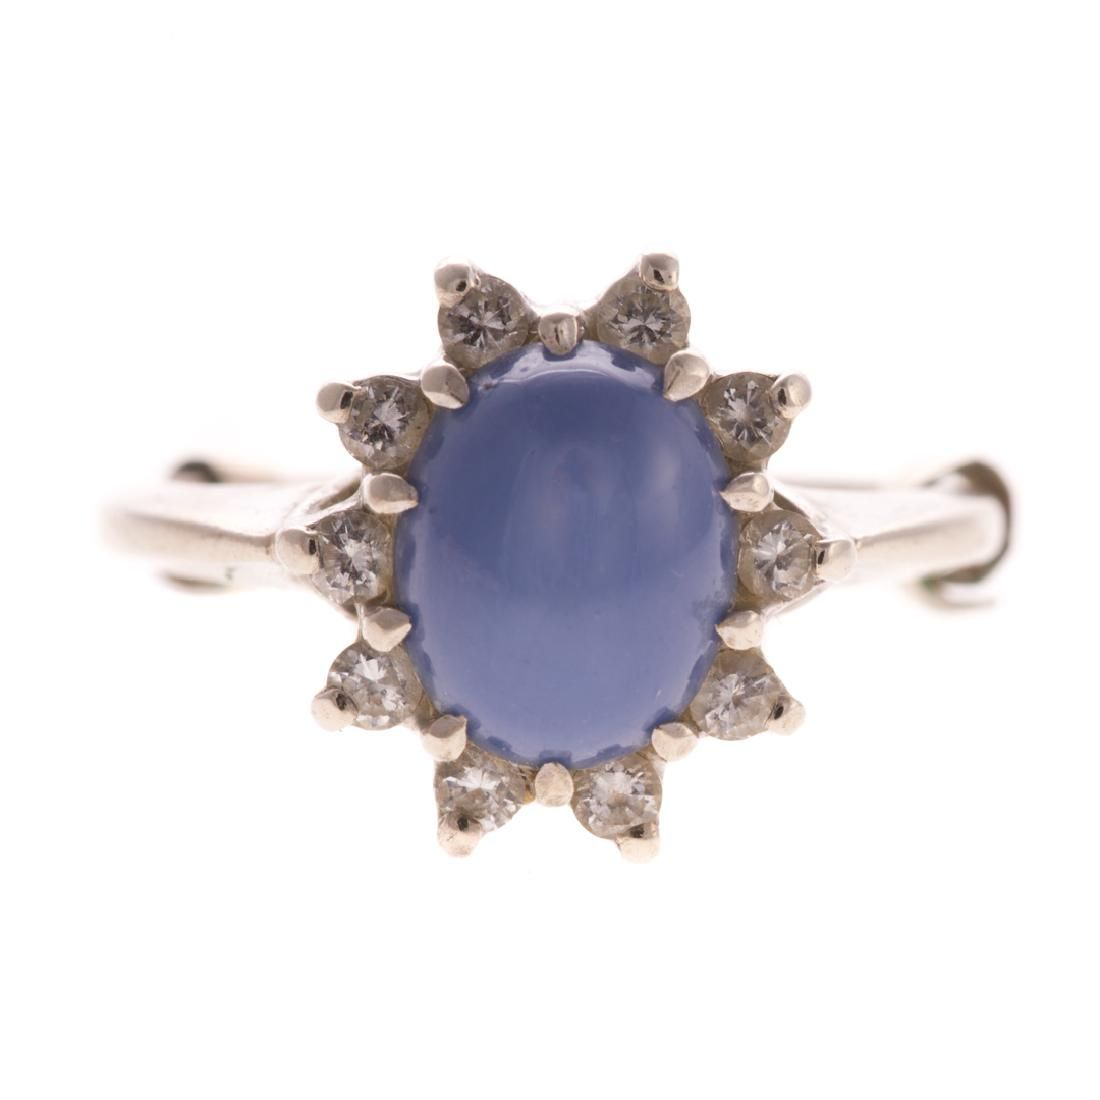 A Lady's Star Sapphire & Diamond Ring in 14K